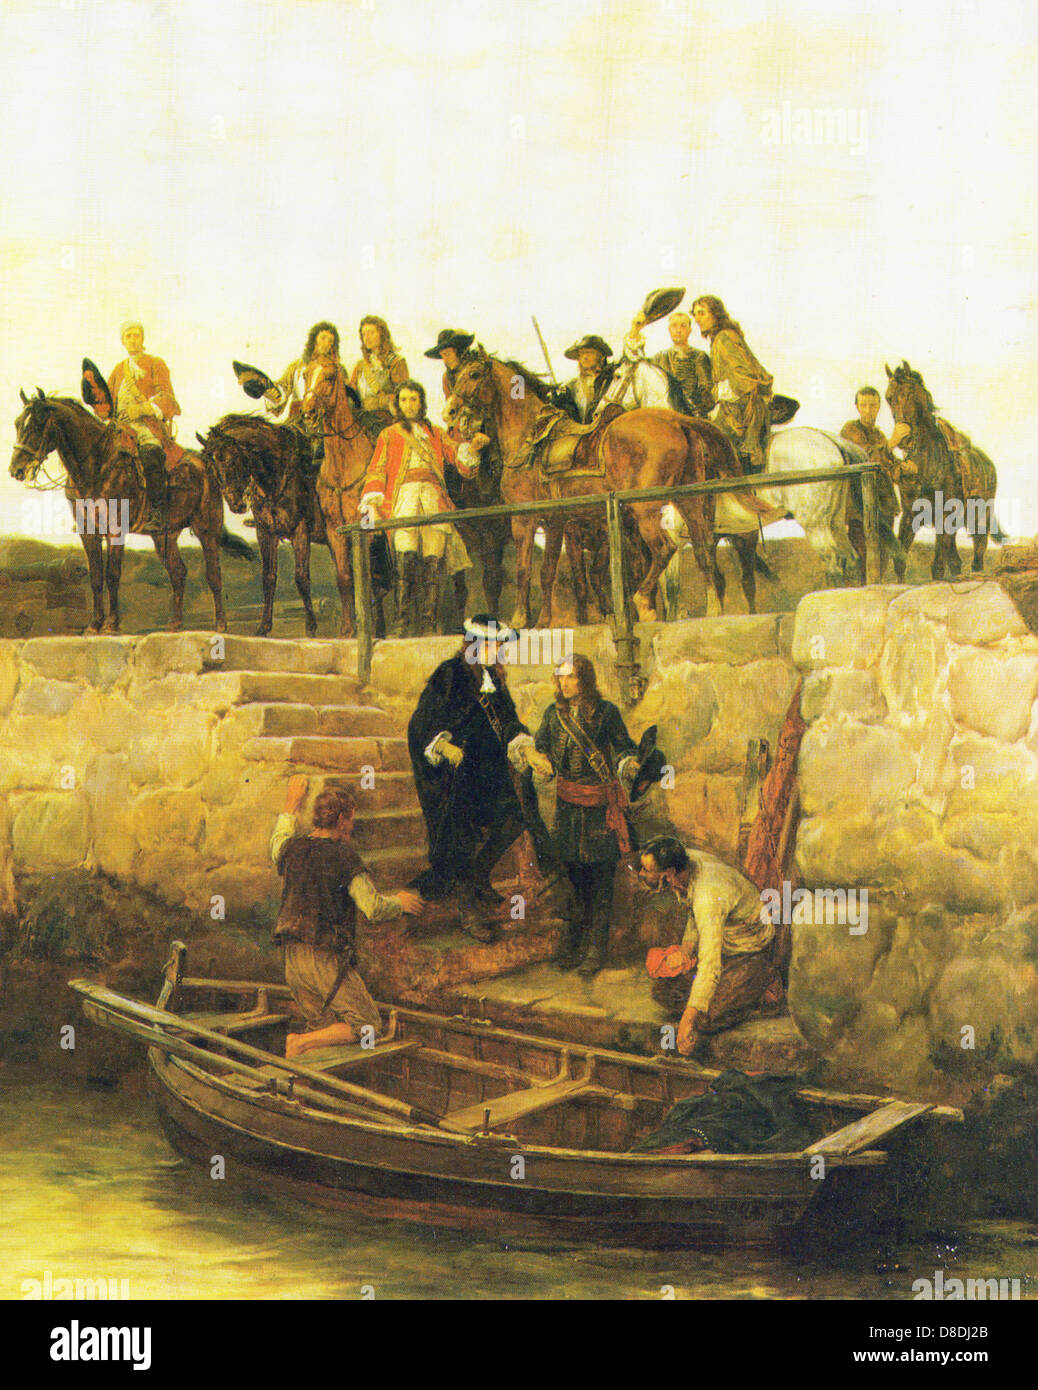 an introduction to the life of king james ii How long was the life of david why was he made israel's king while saul was still alive the life of king david  introduction adam - noah - abraham.